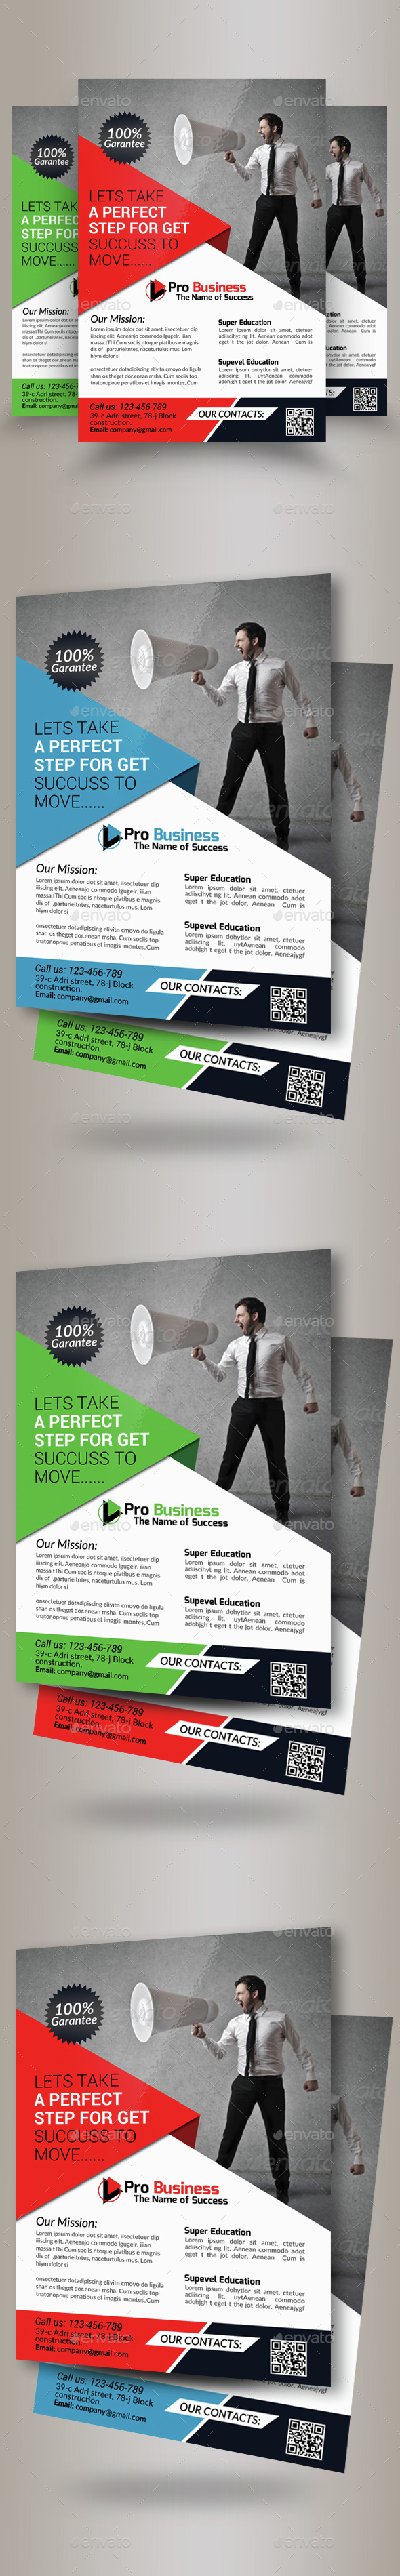 Advertisment Company Flyer Template - Corporate Flyers